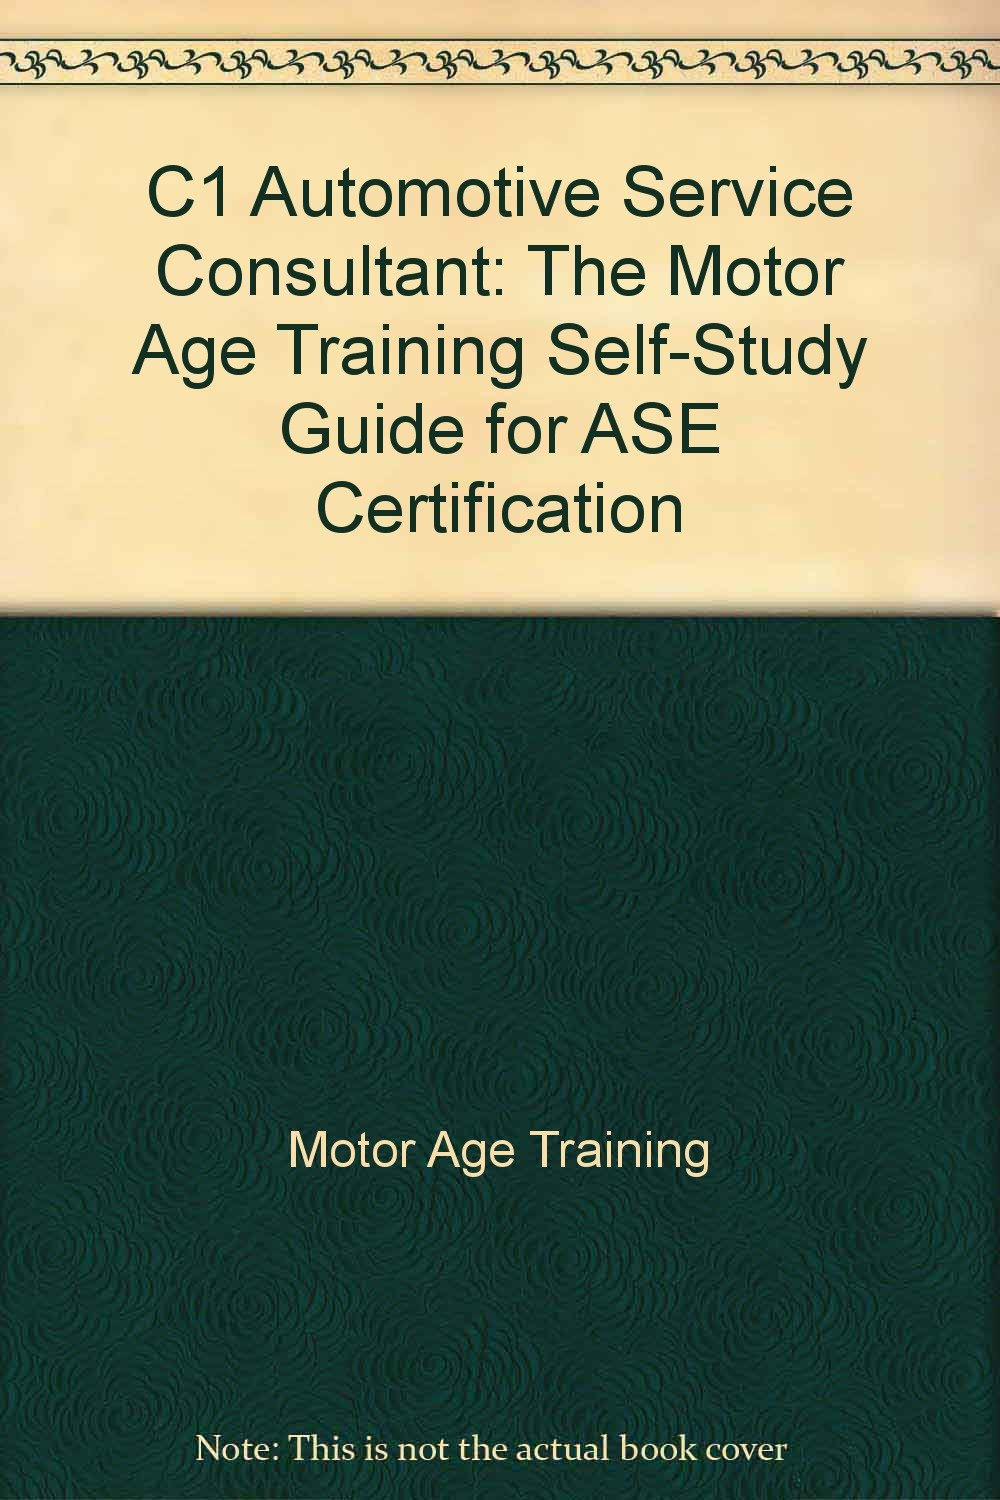 C1 automotive service consultant the motor age training self c1 automotive service consultant the motor age training self study guide for ase certification motor age training 9781933180151 amazon books xflitez Choice Image